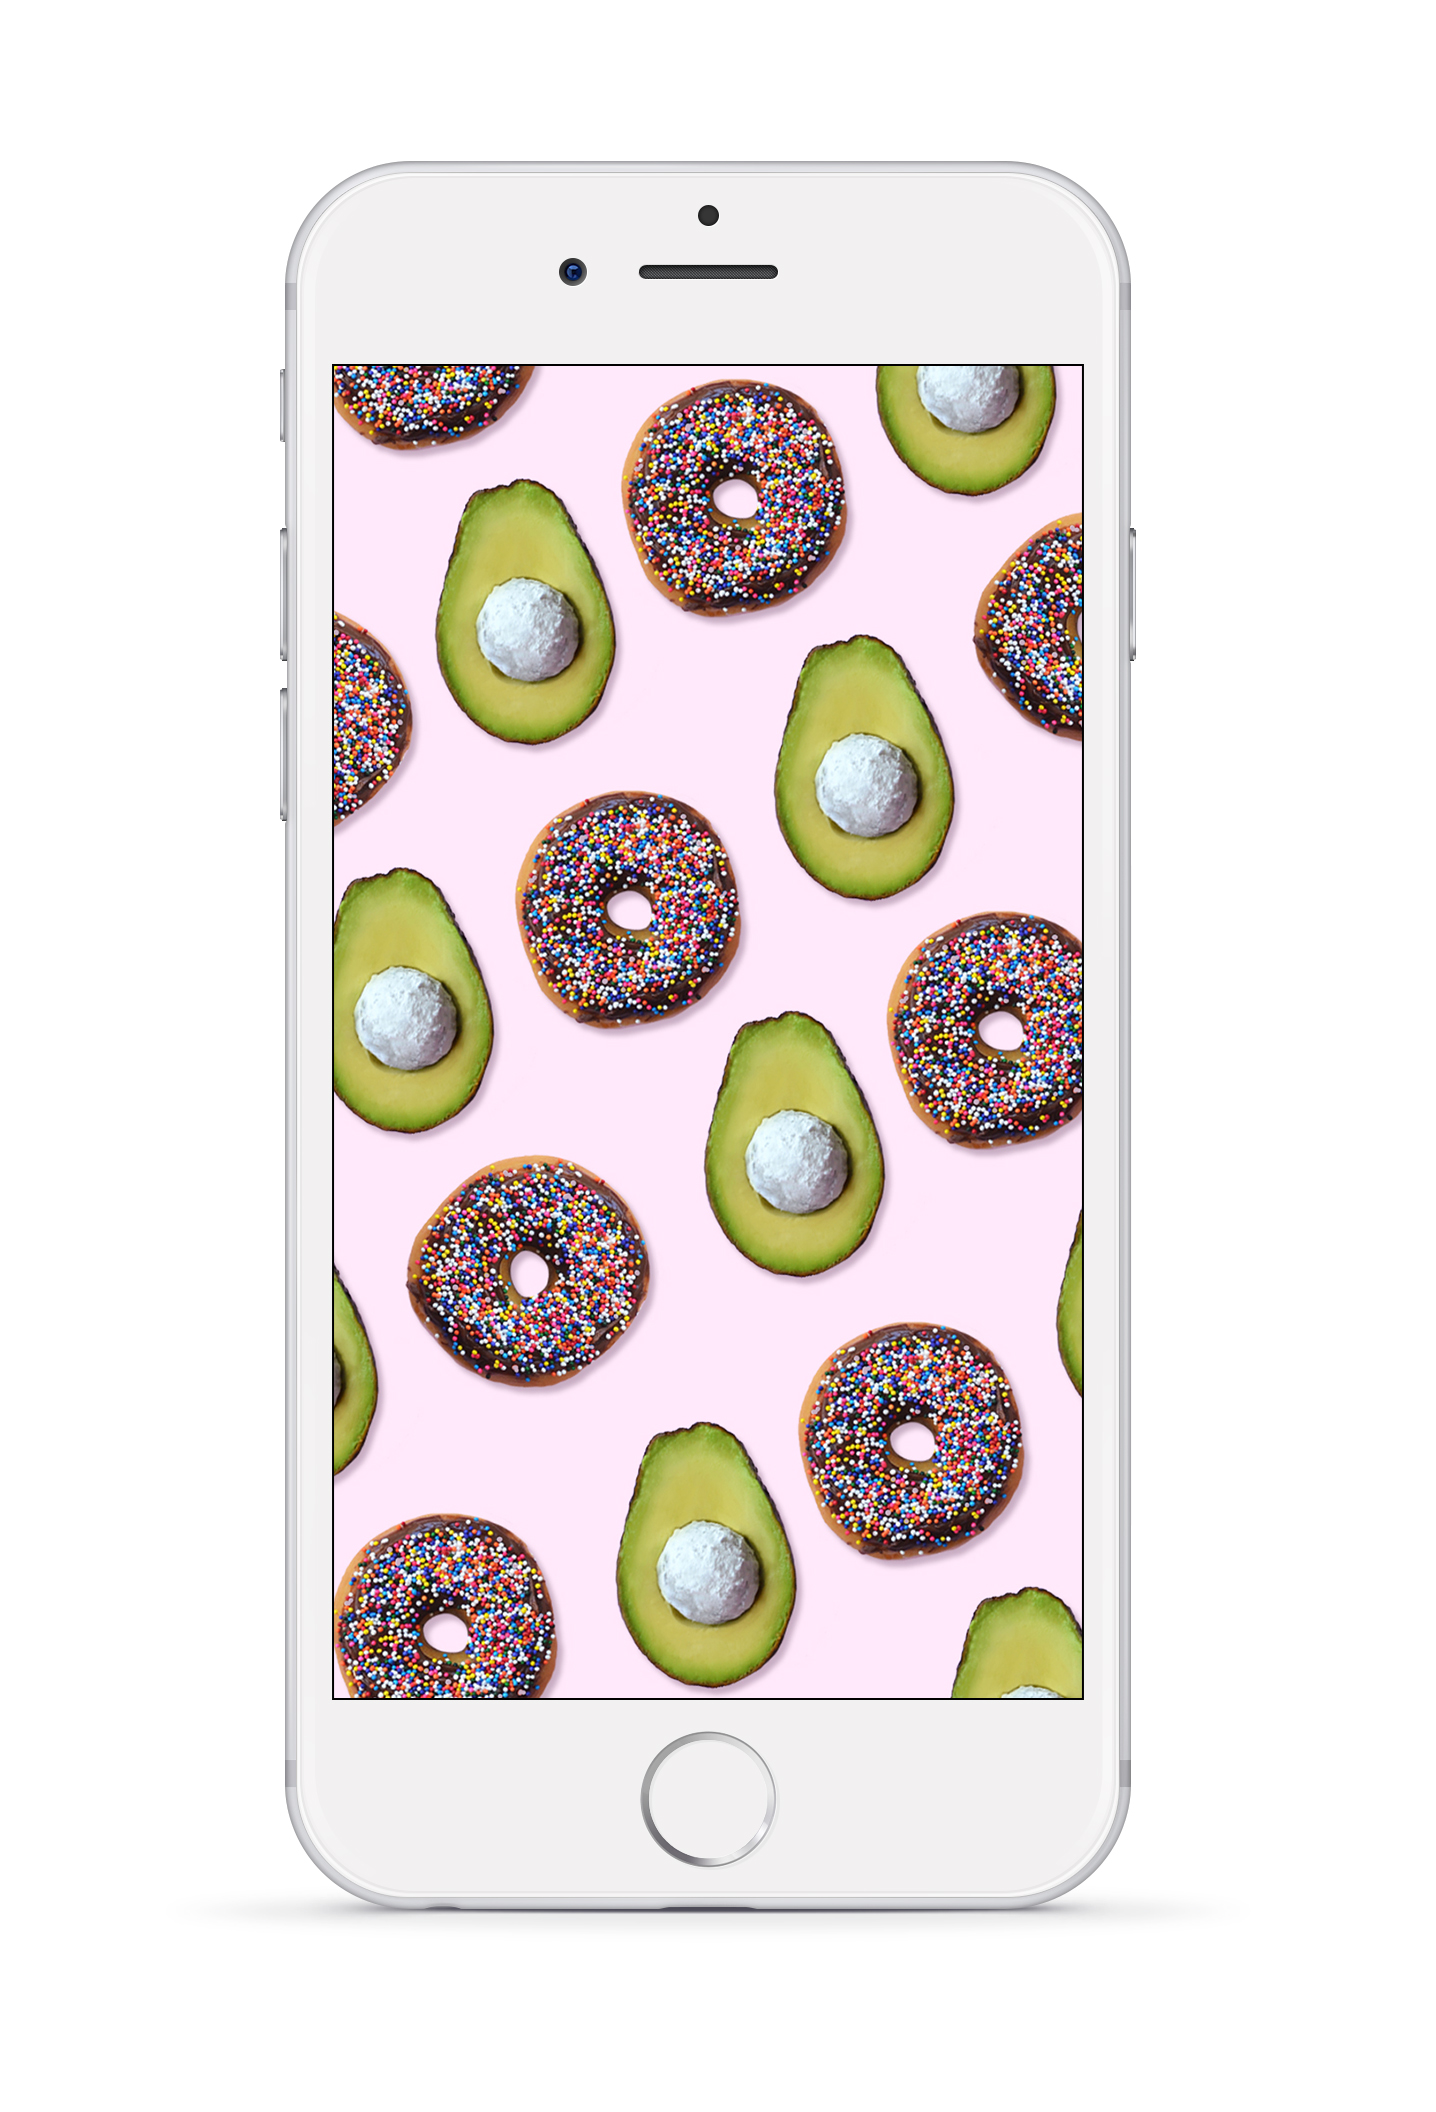 avocadonut-wallpaper-mockup.jpg